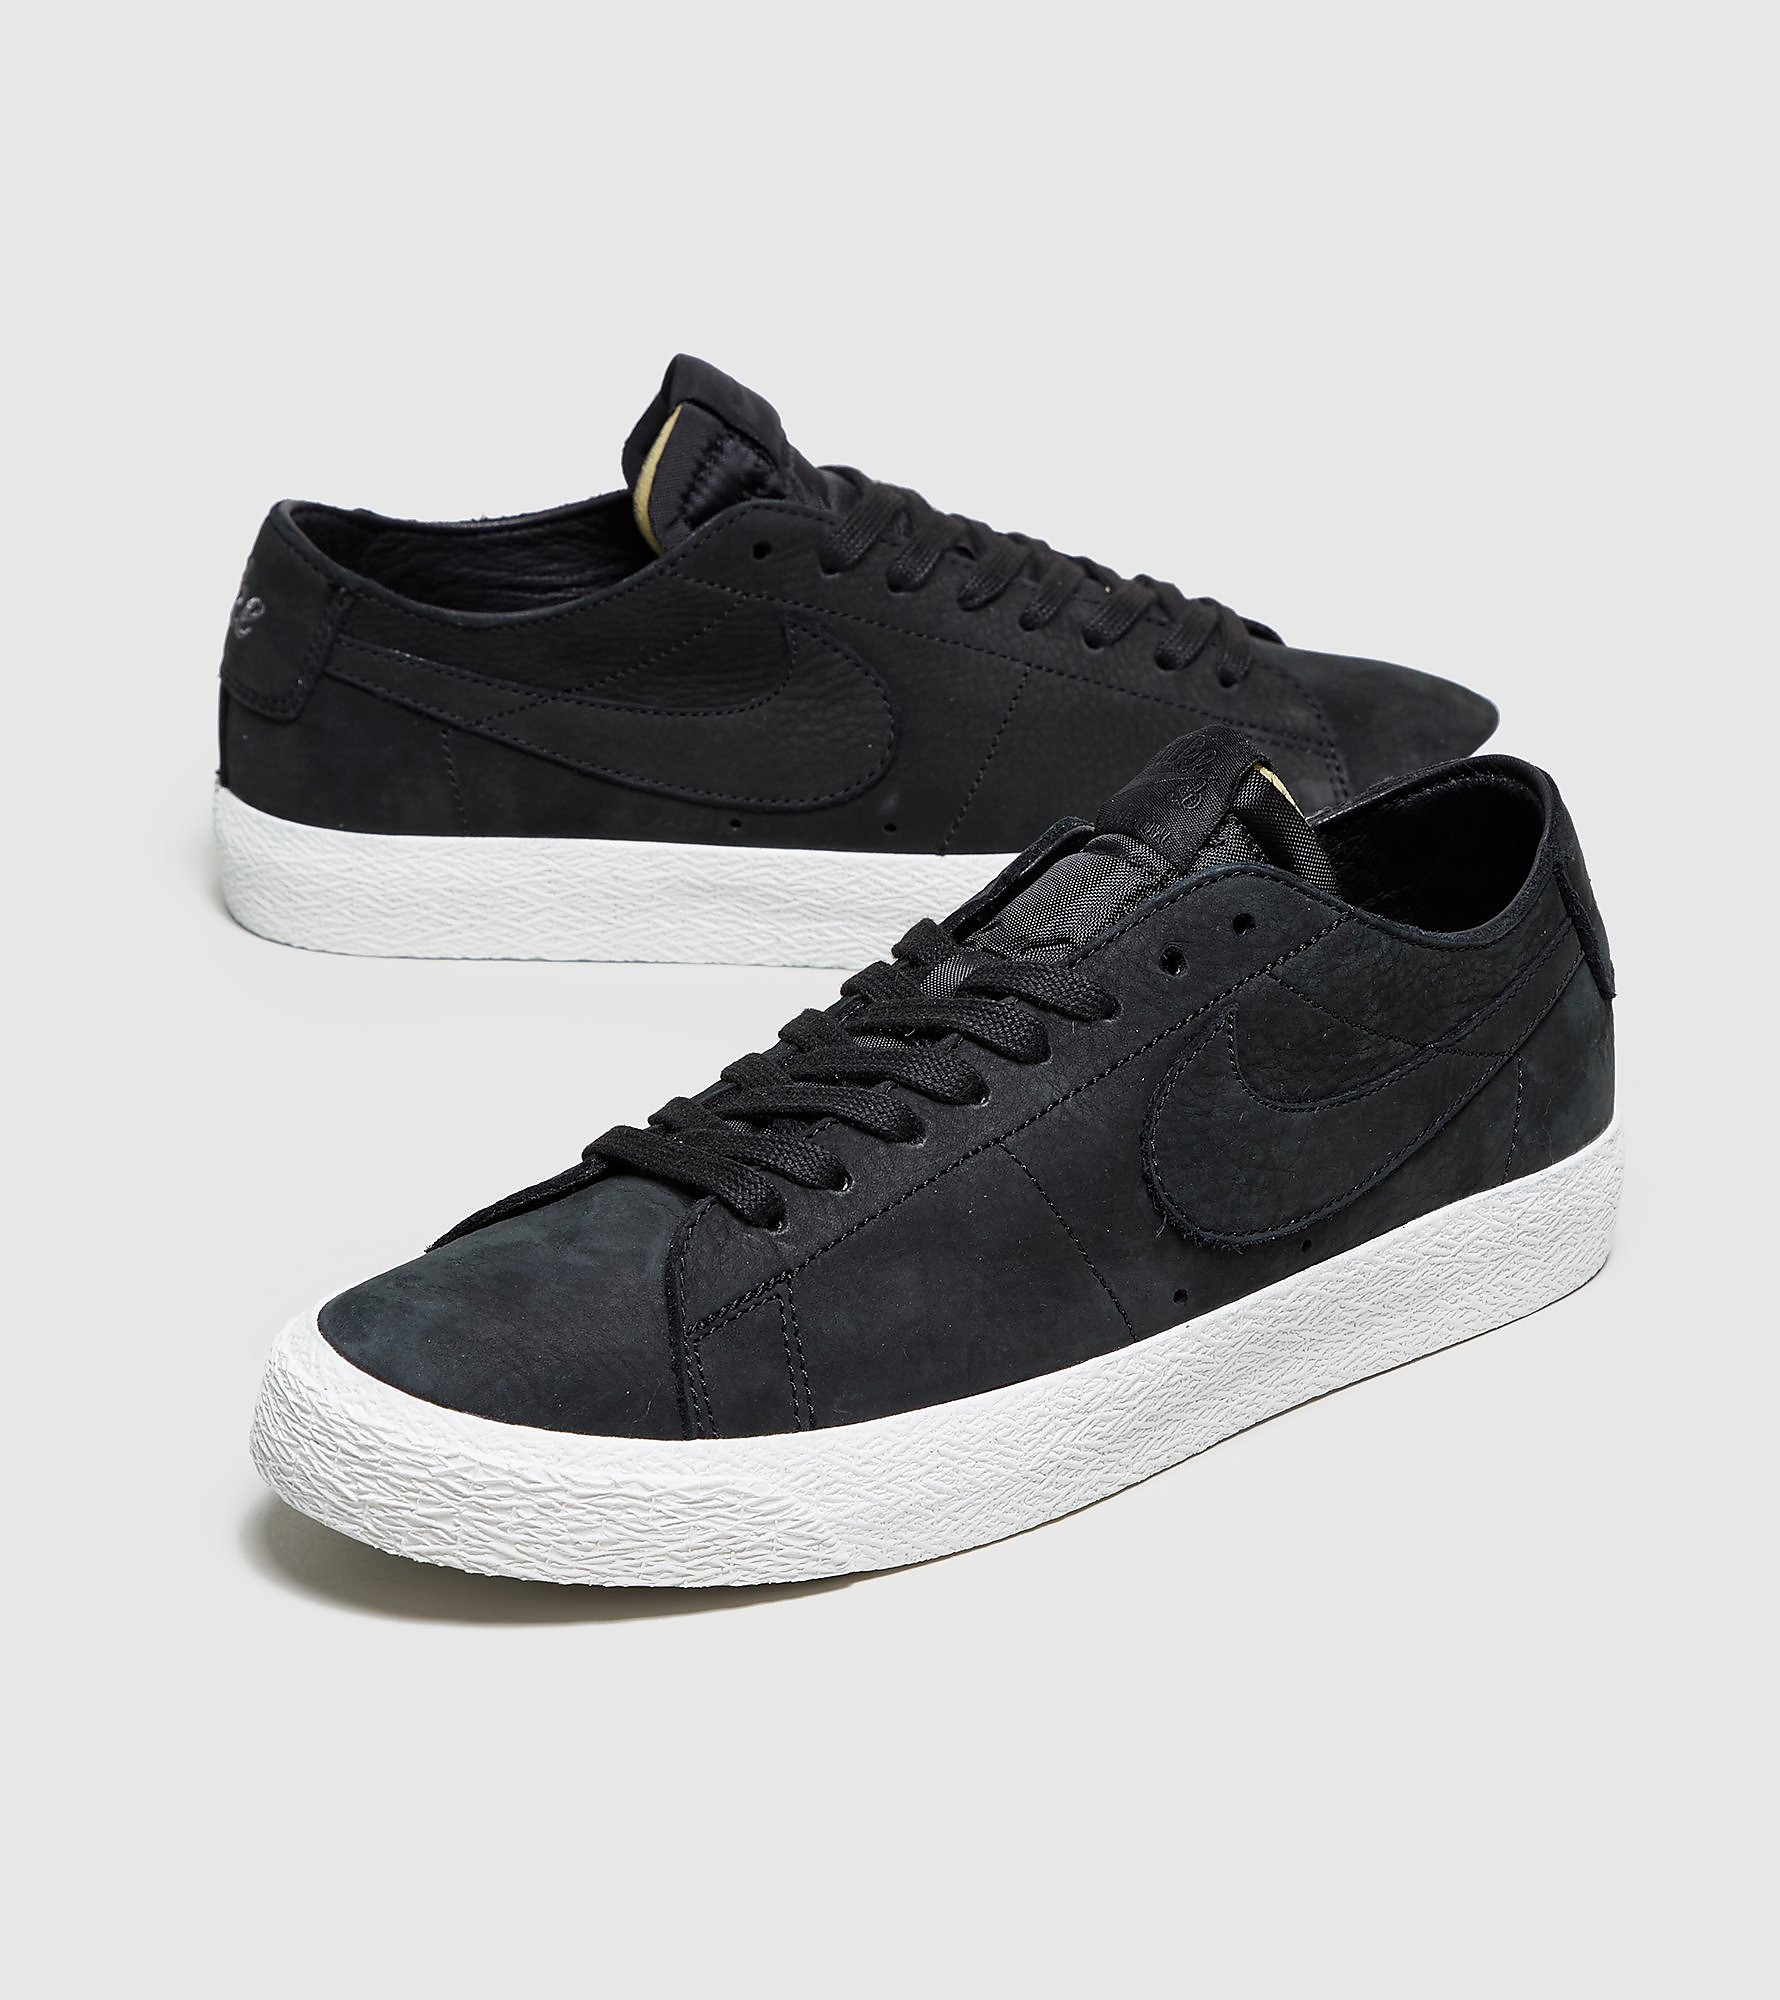 Nike SB Blazer Low Deconstructed